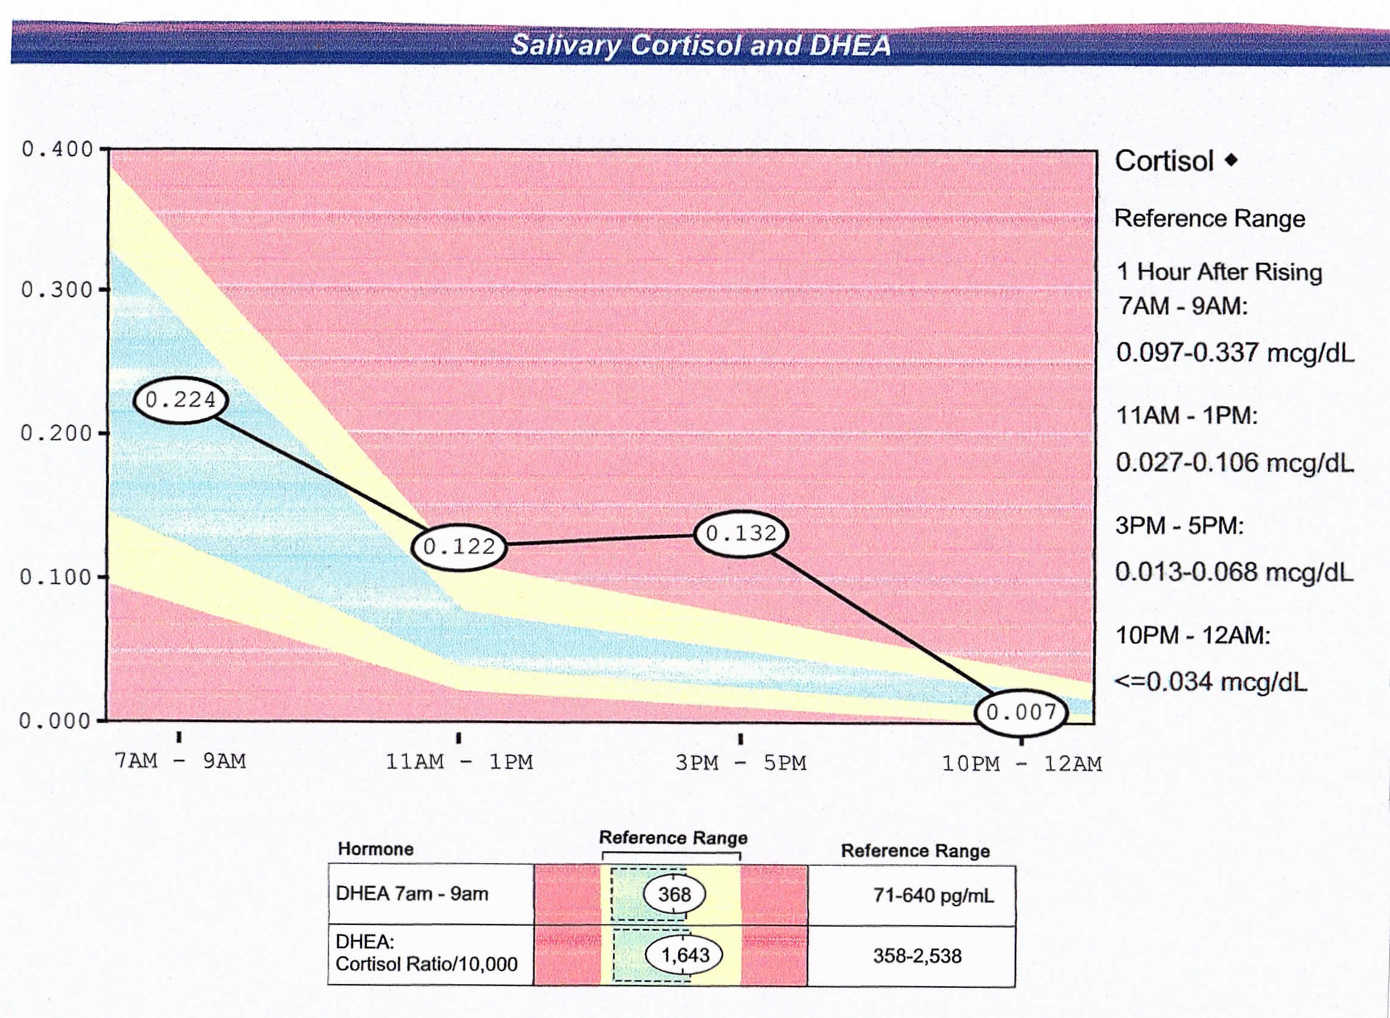 Example salivary cortisol test results